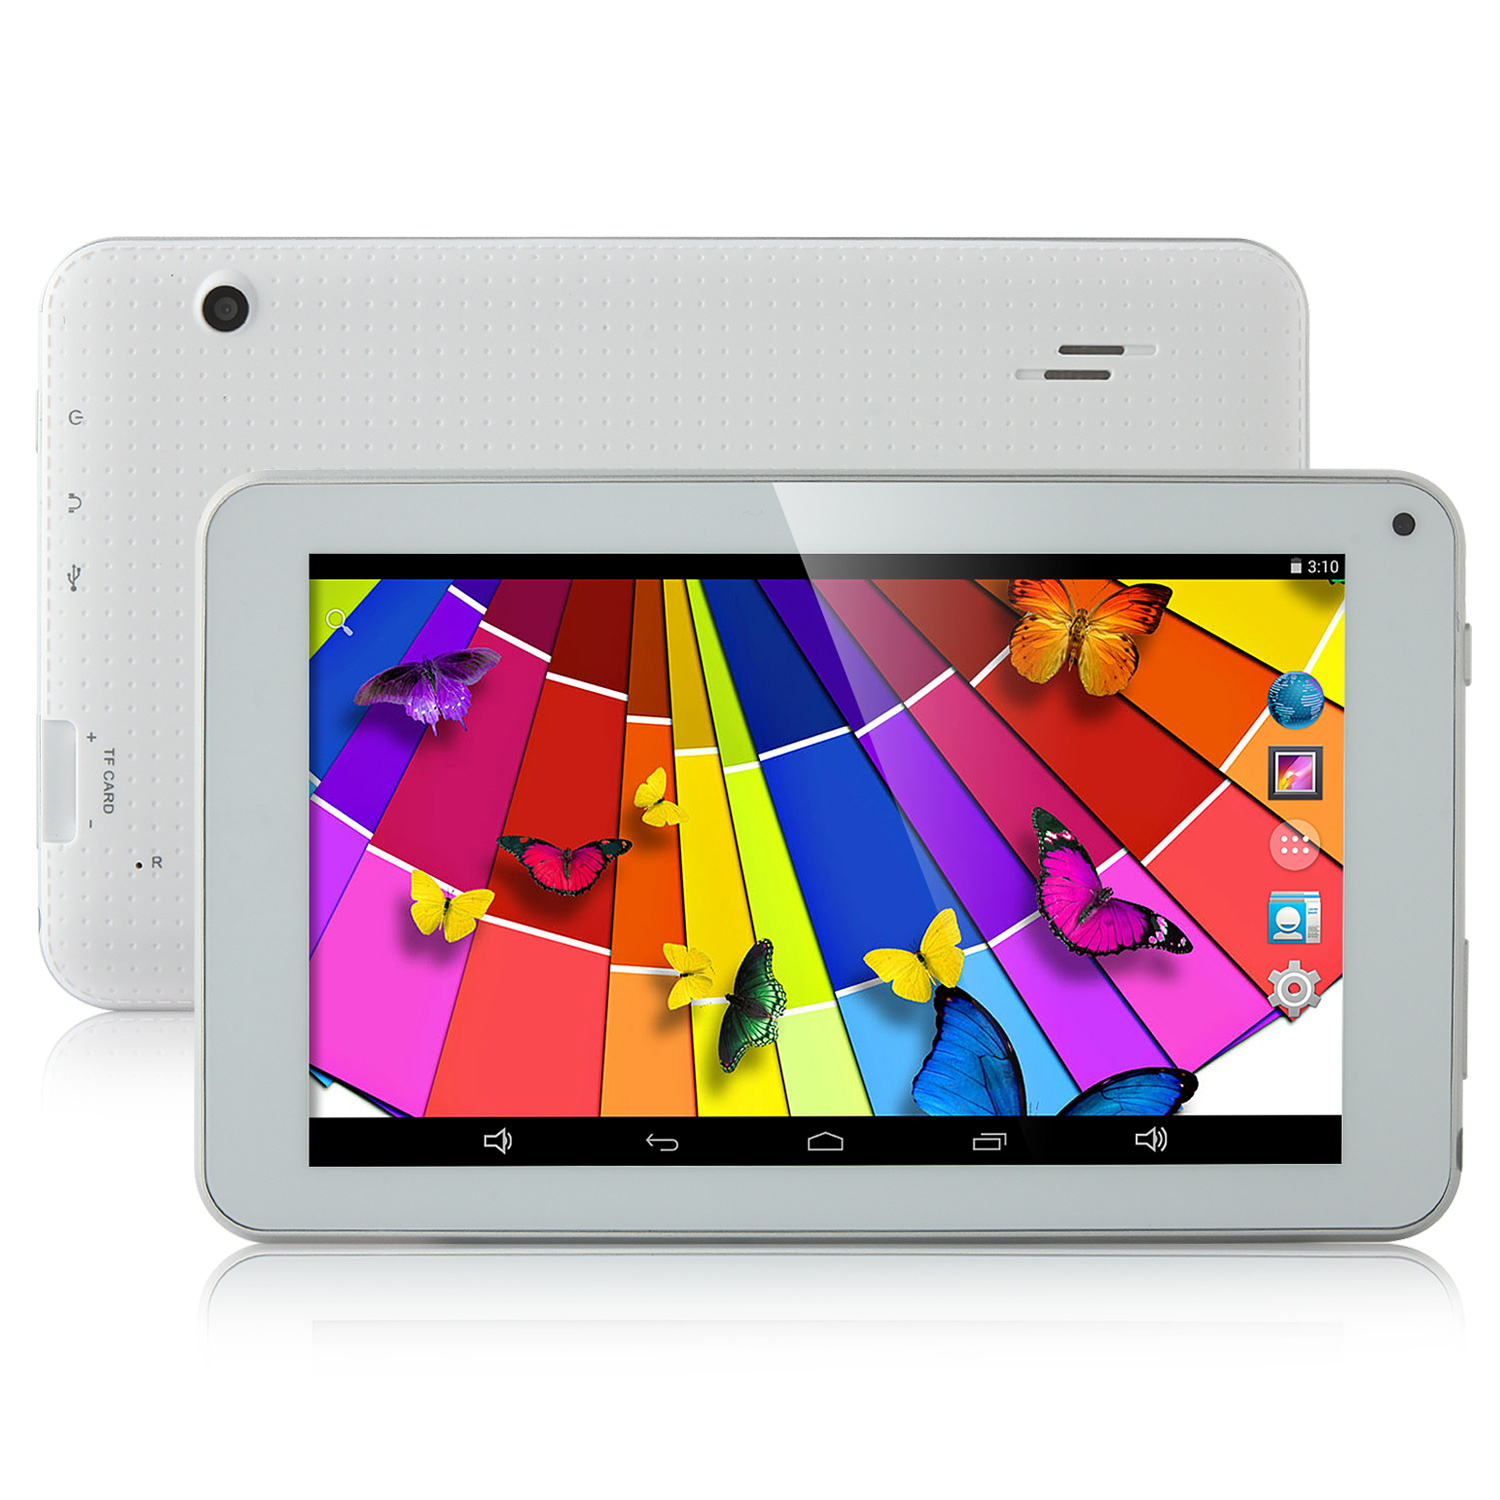 H701 Tablet PC RK3126 Quad Core 7.0 Inch Android 4.4 IPS Screen 8GB White